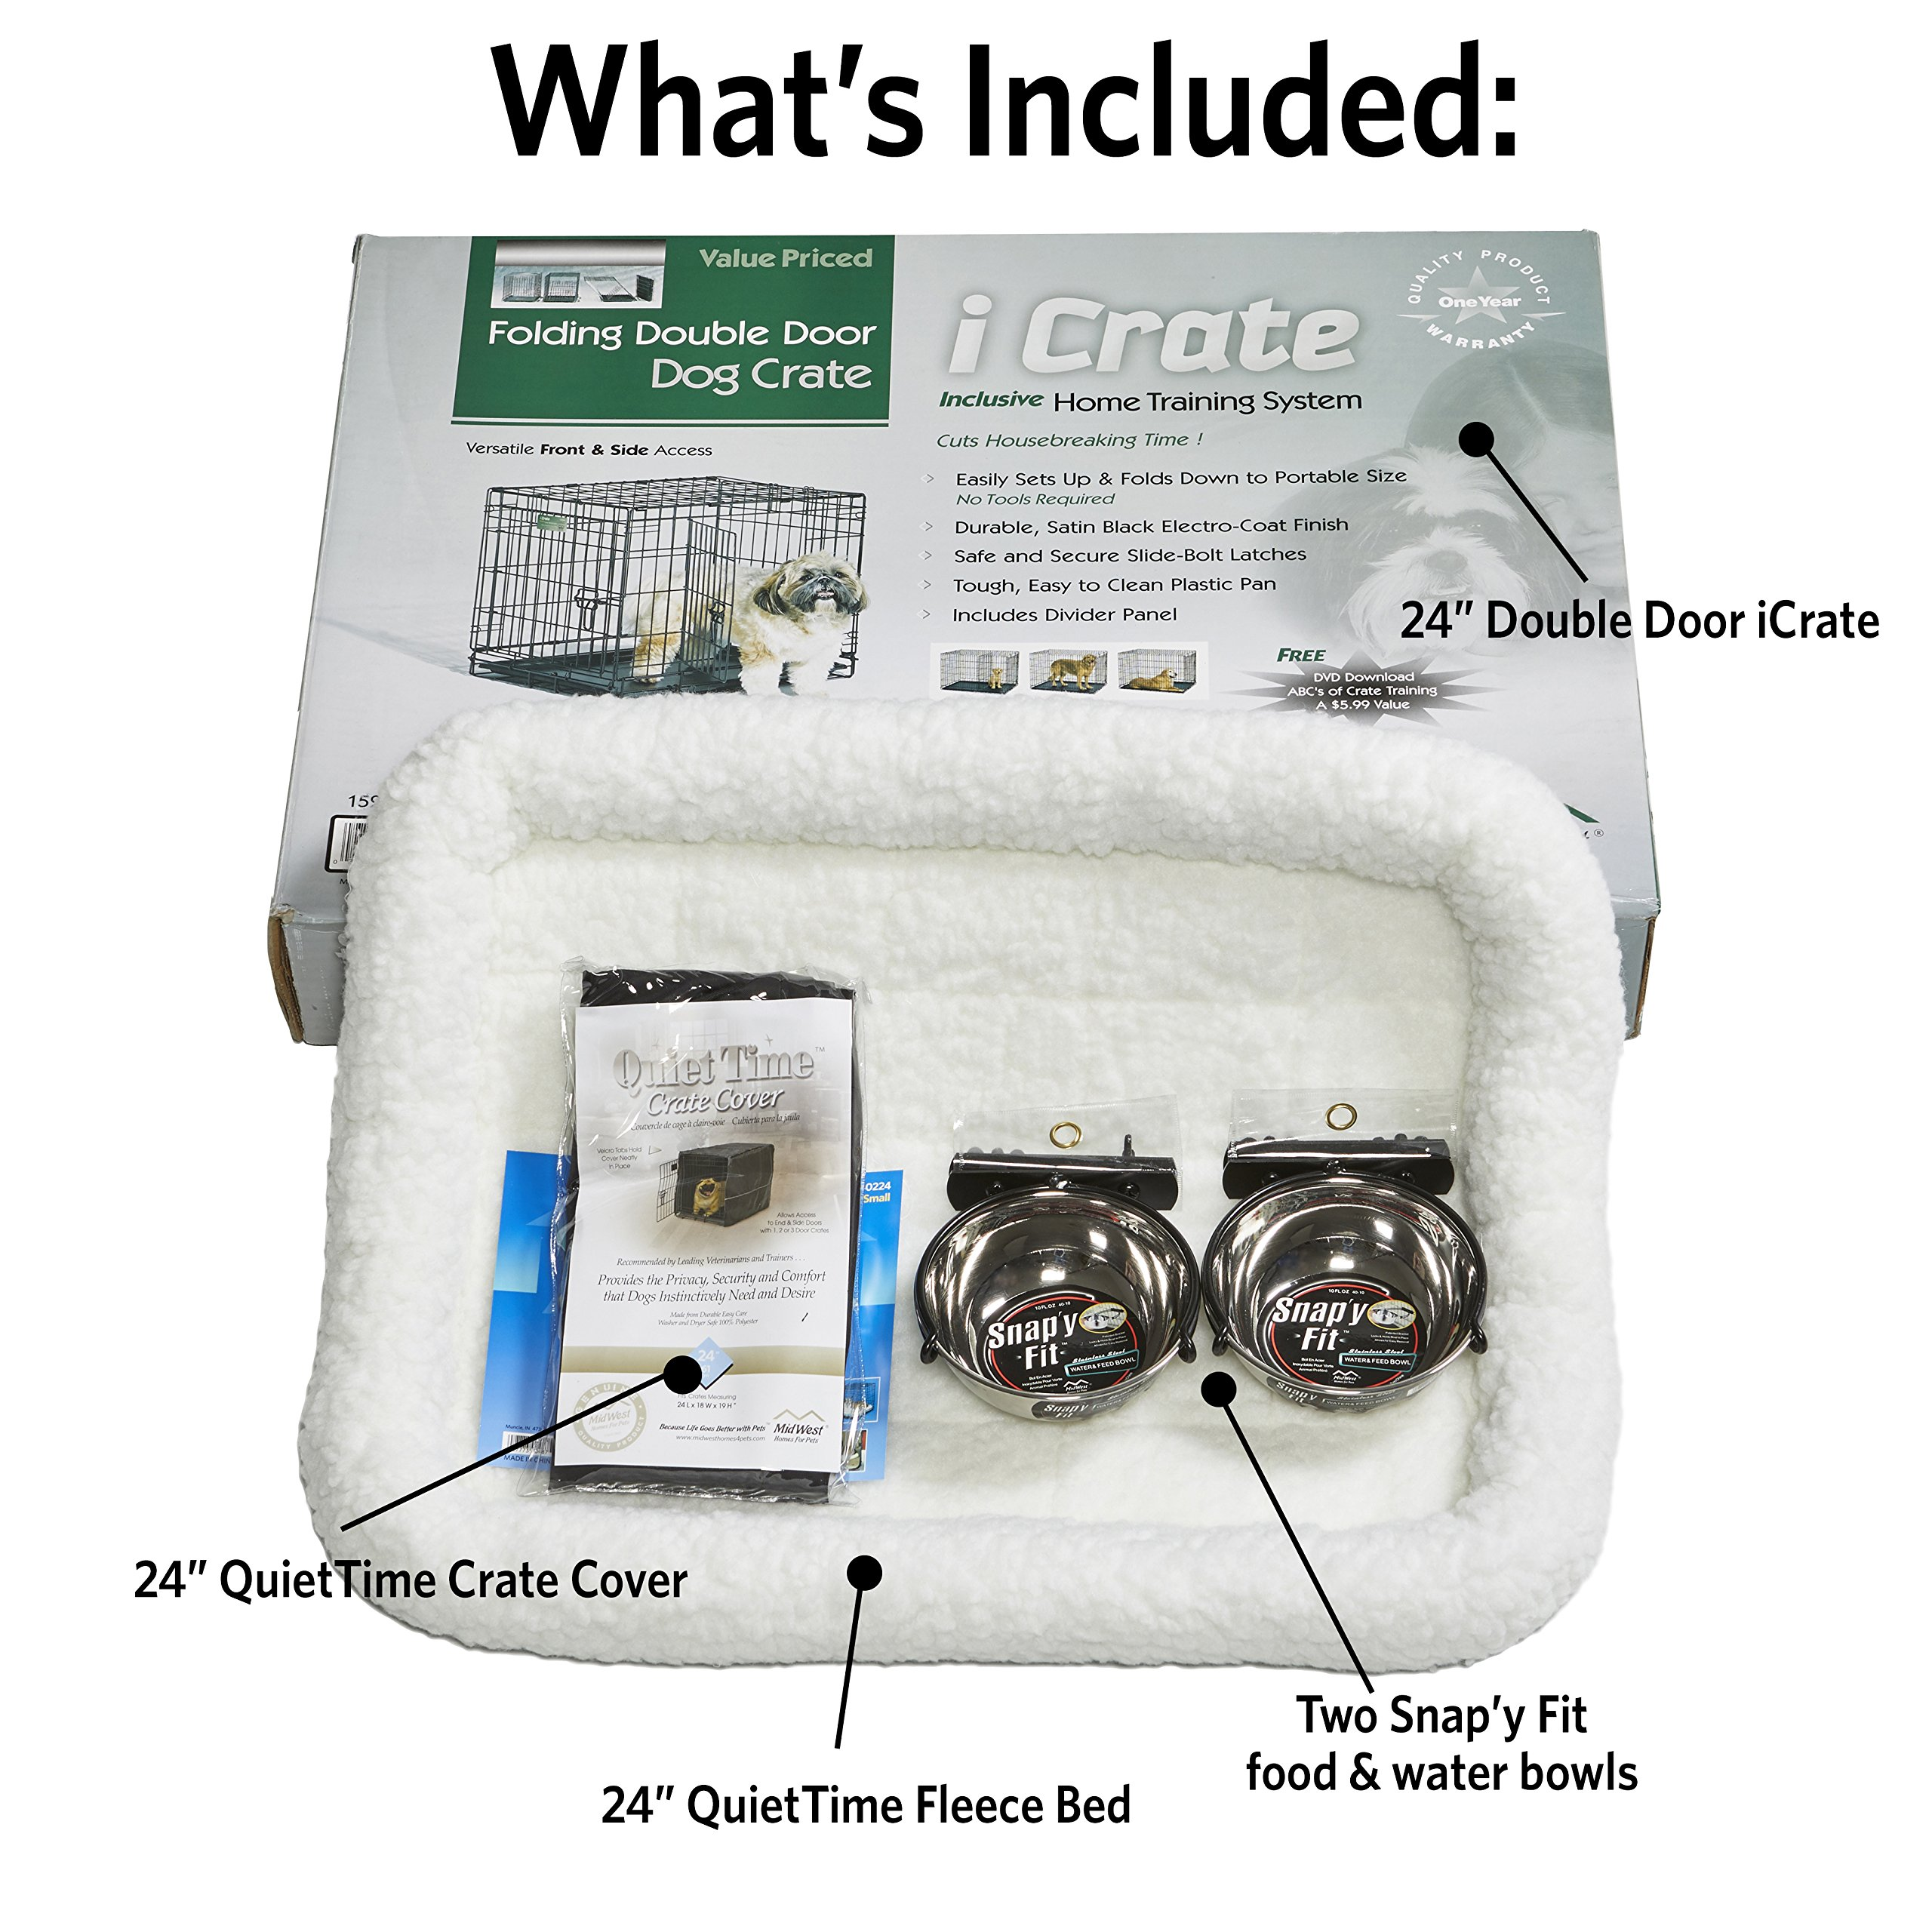 MidWest Homes for Pets Small Dog Crate Starter Kit | One 2-Door iCrate, Pet Bed, Crate Cover & 2 Pet Bowls | 24-Inch Ideal for Small Dog Breeds by MidWest Homes for Pets (Image #2)